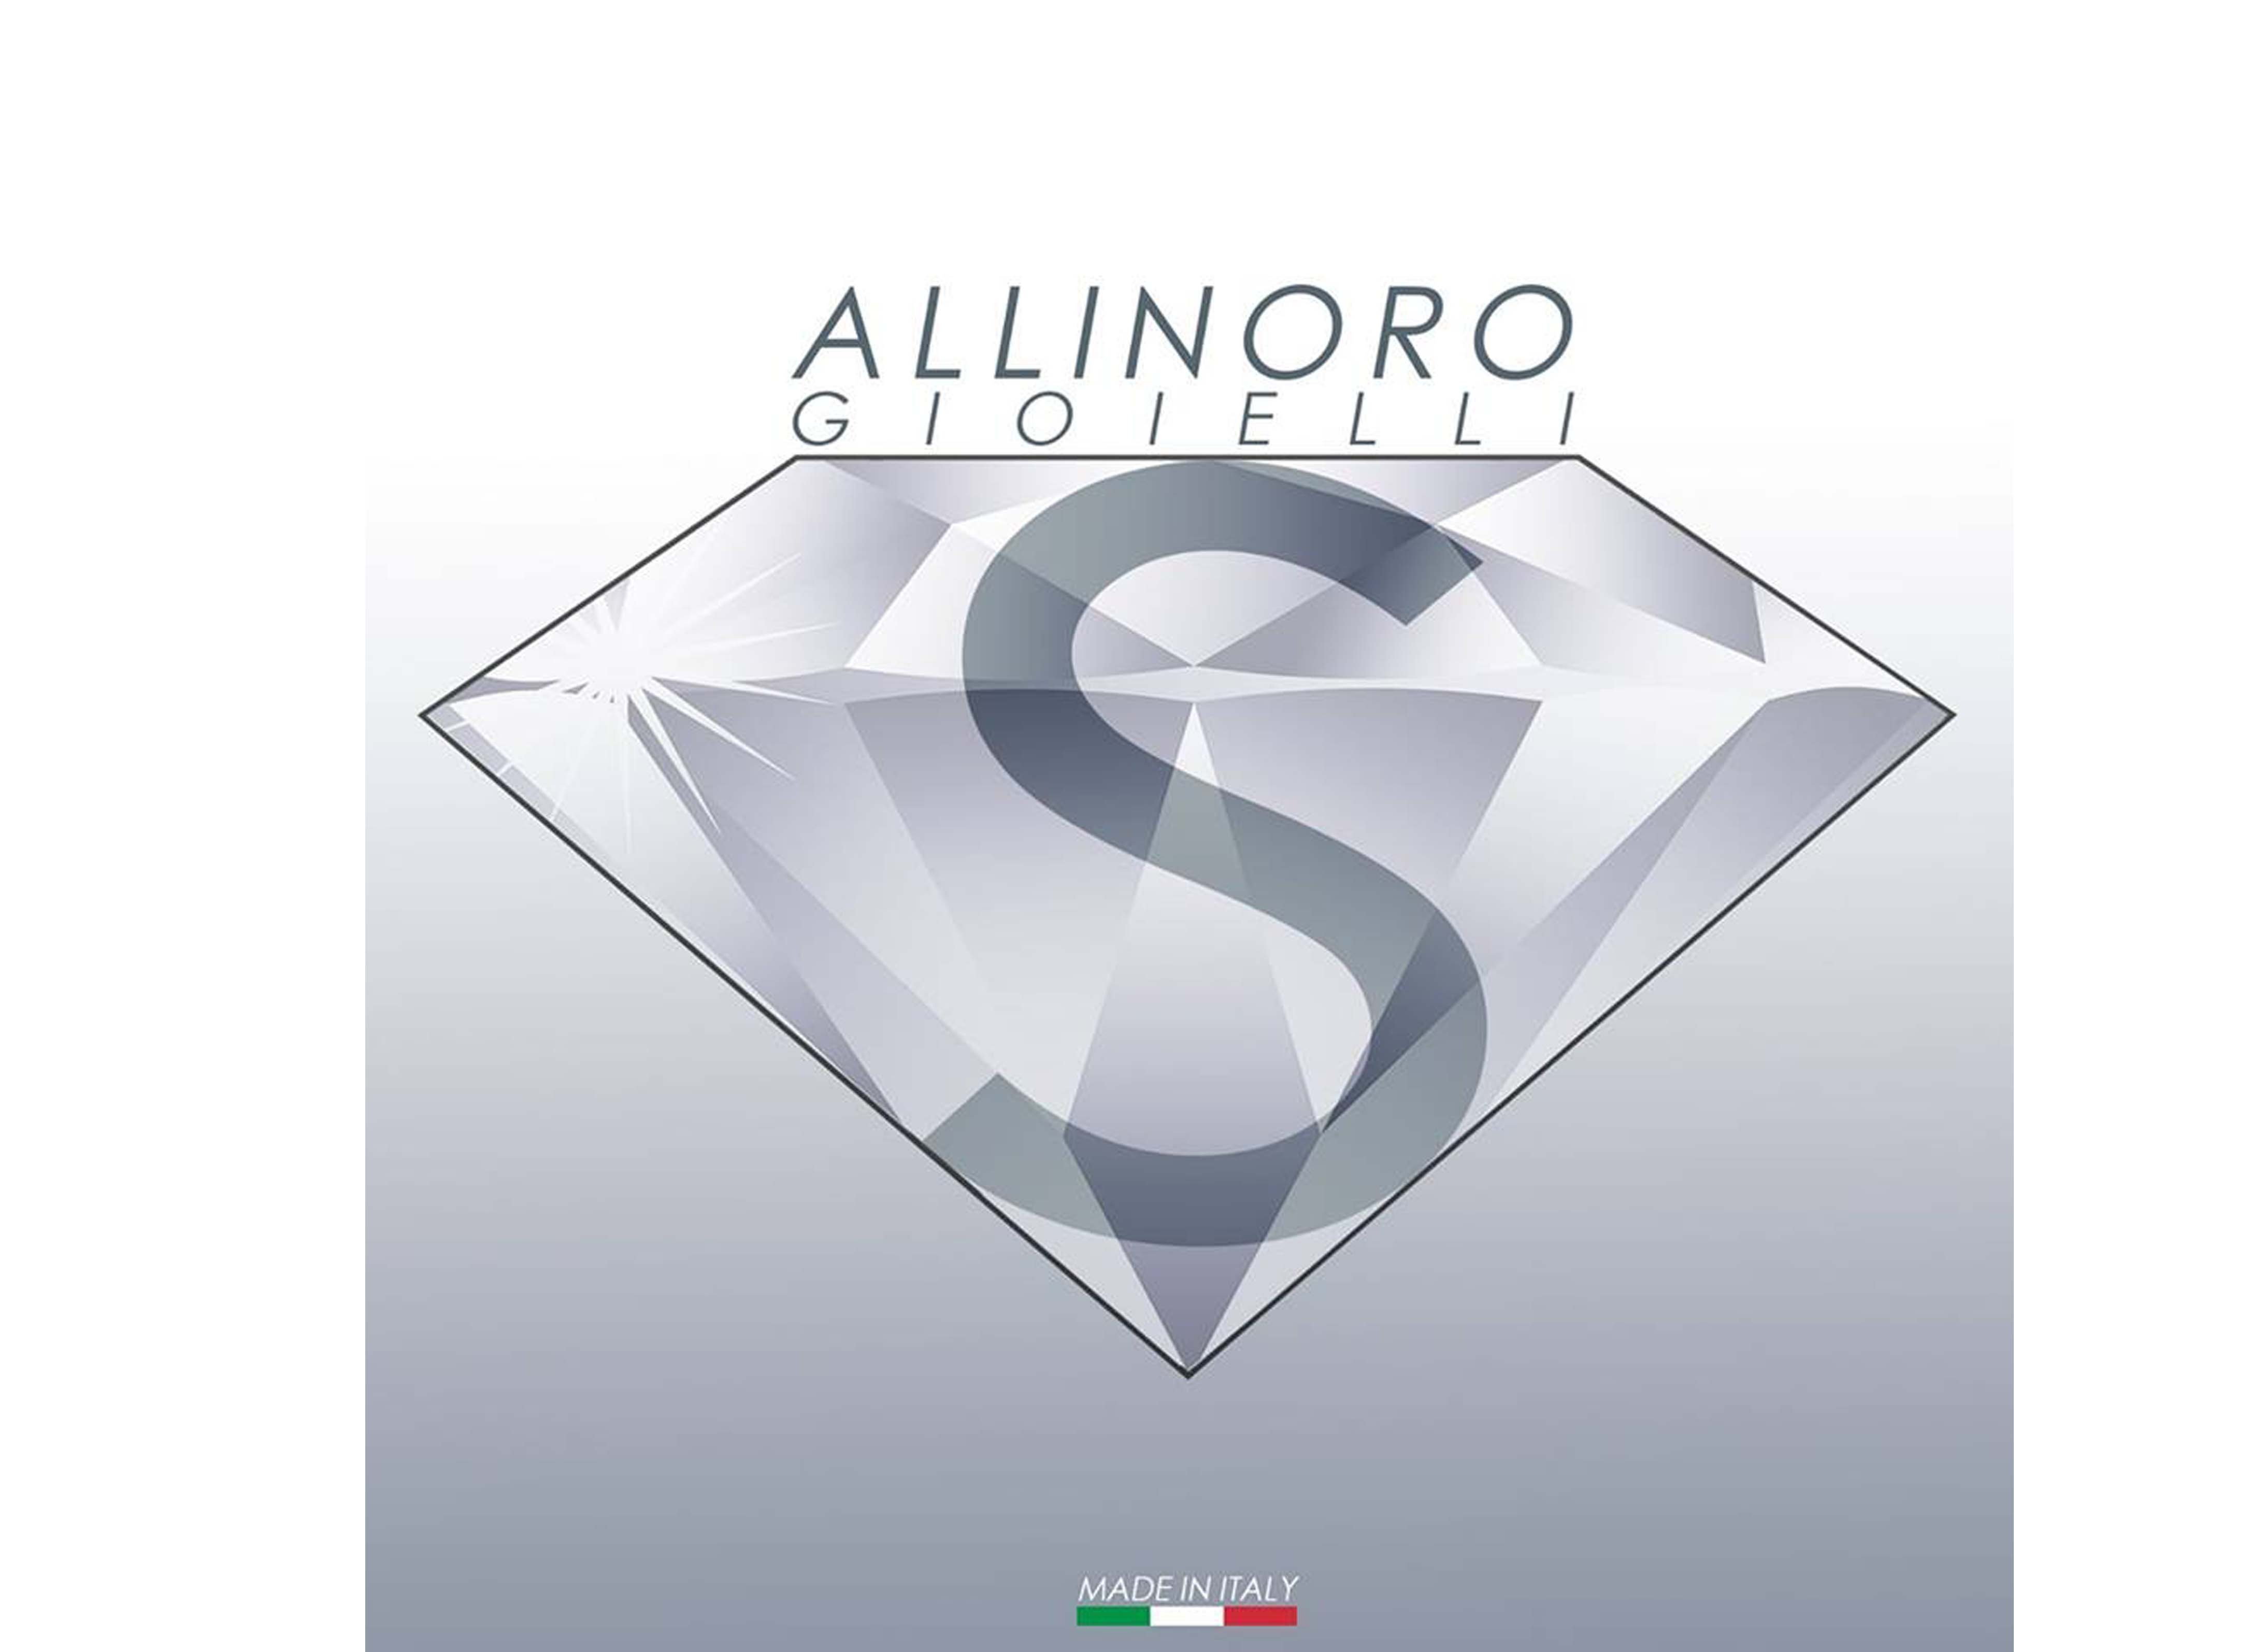 Allinoro Salvatore